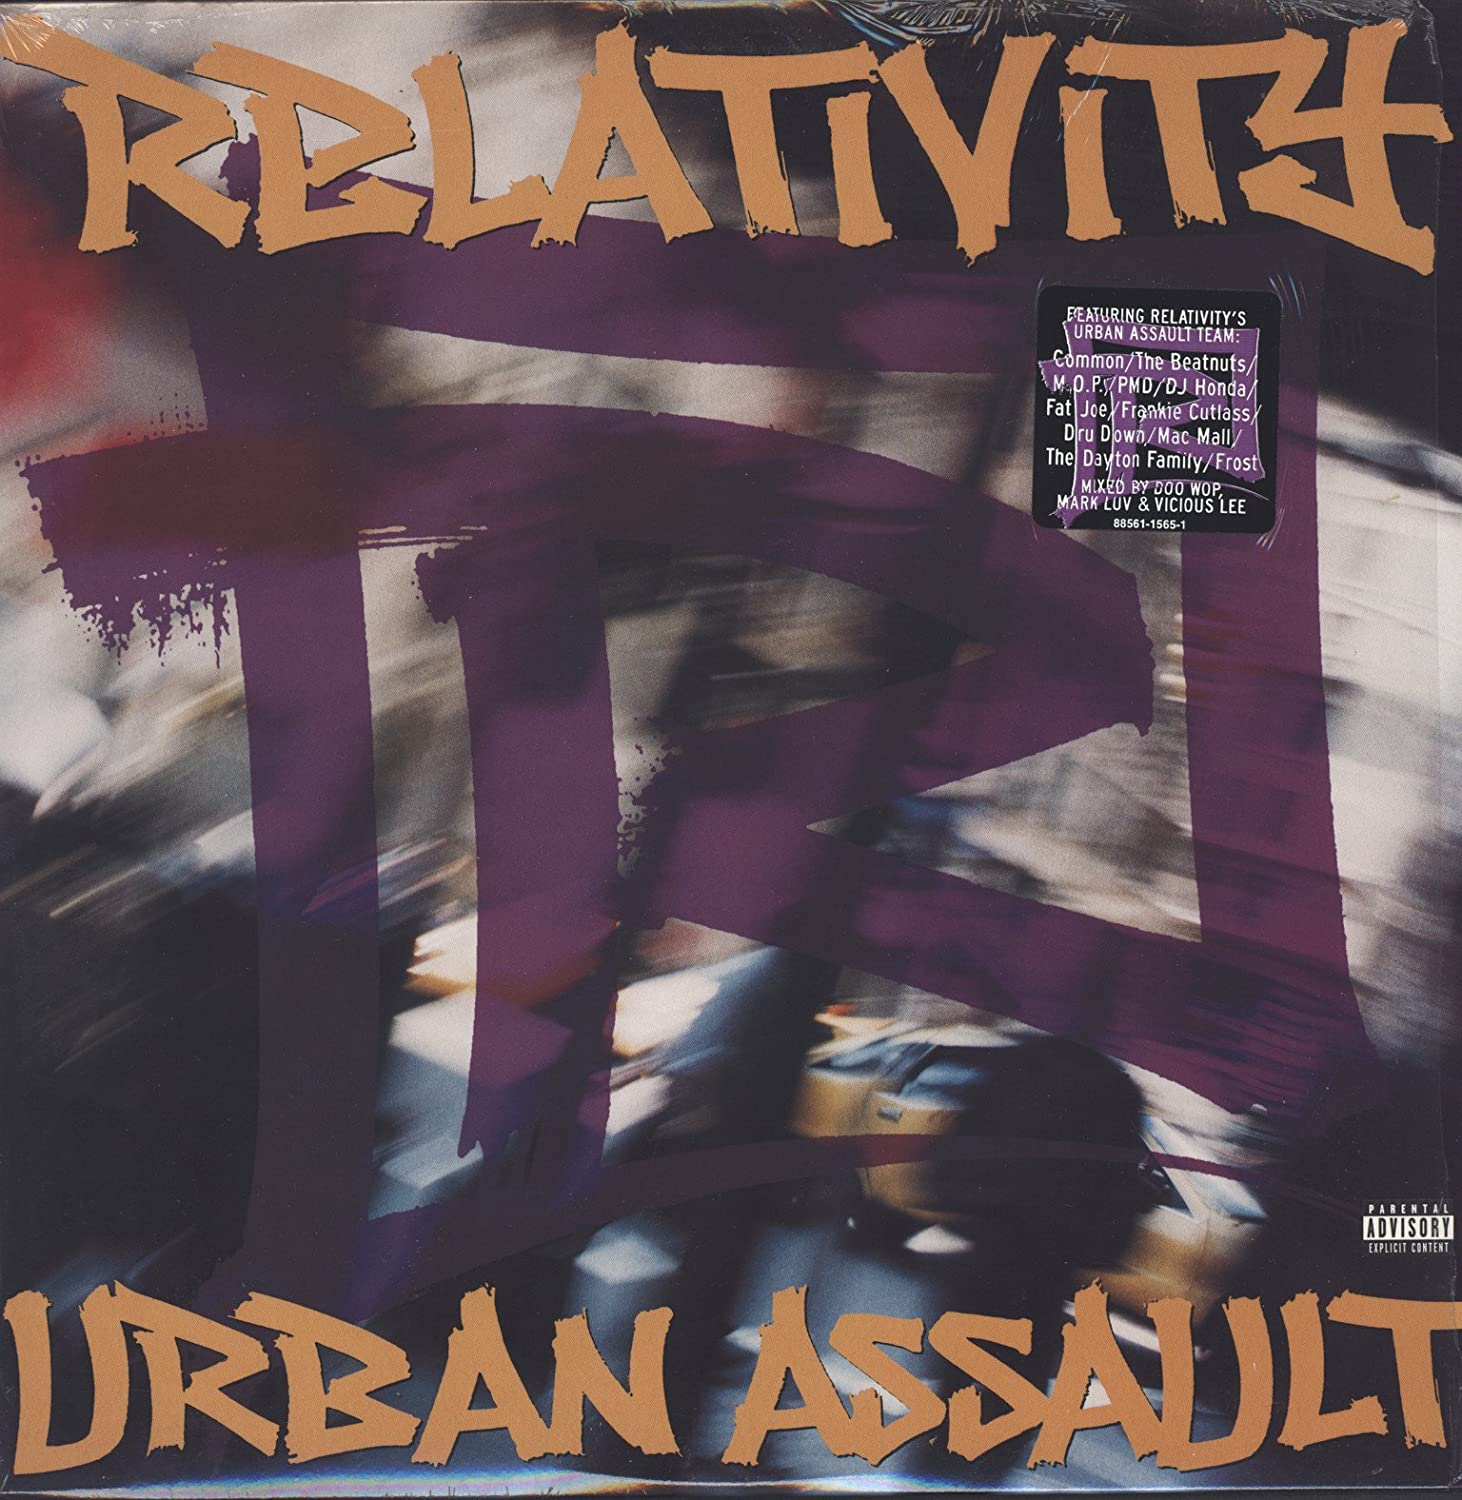 Relativity Urban AssaultExplicit Lyrics